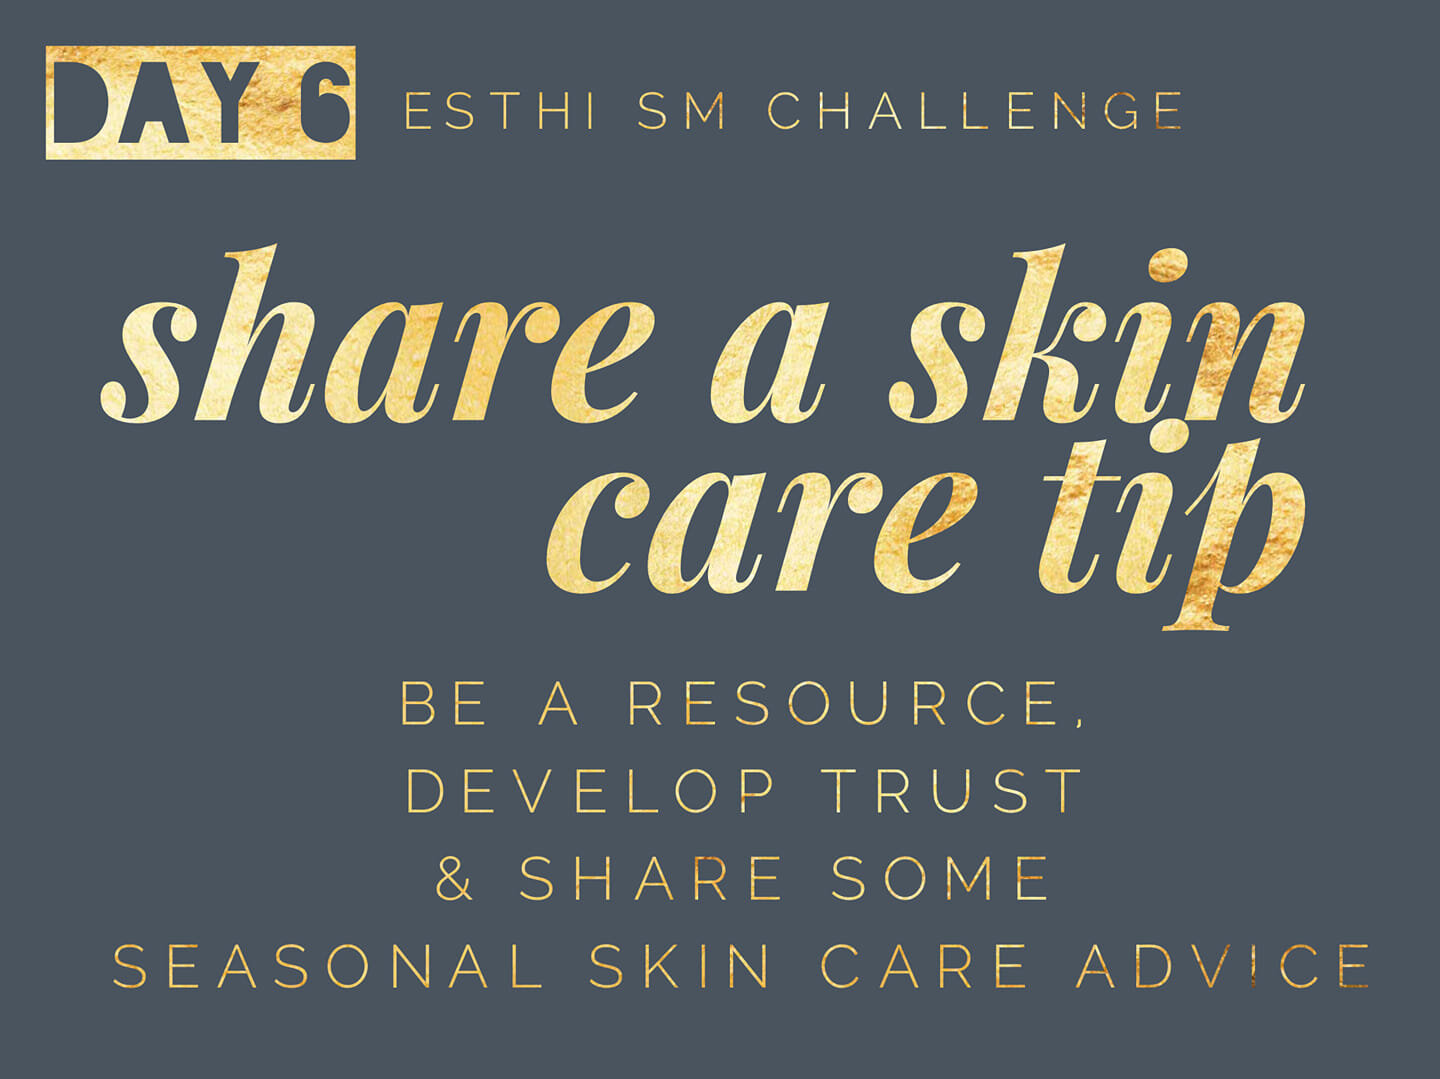 share a skin care tip - This post will position yourself as a trusted resource for skin care and helpful knowledge.Make a post where you share a seasonal skin care tip. It can be simply -